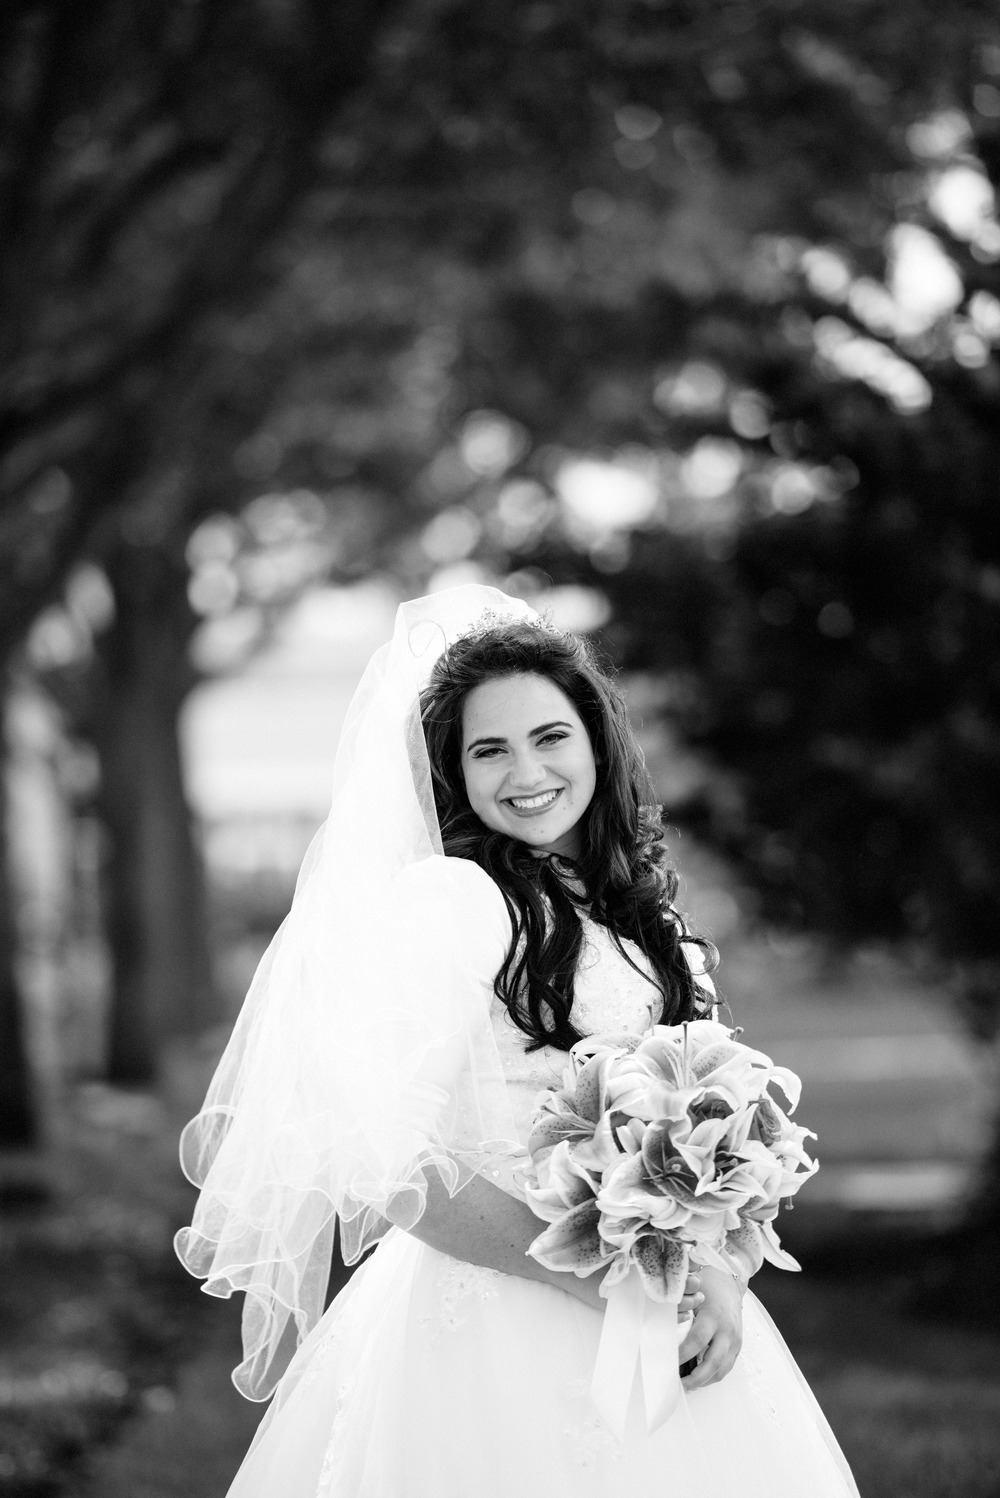 Wedding by Levikfoto.com-050.jpg